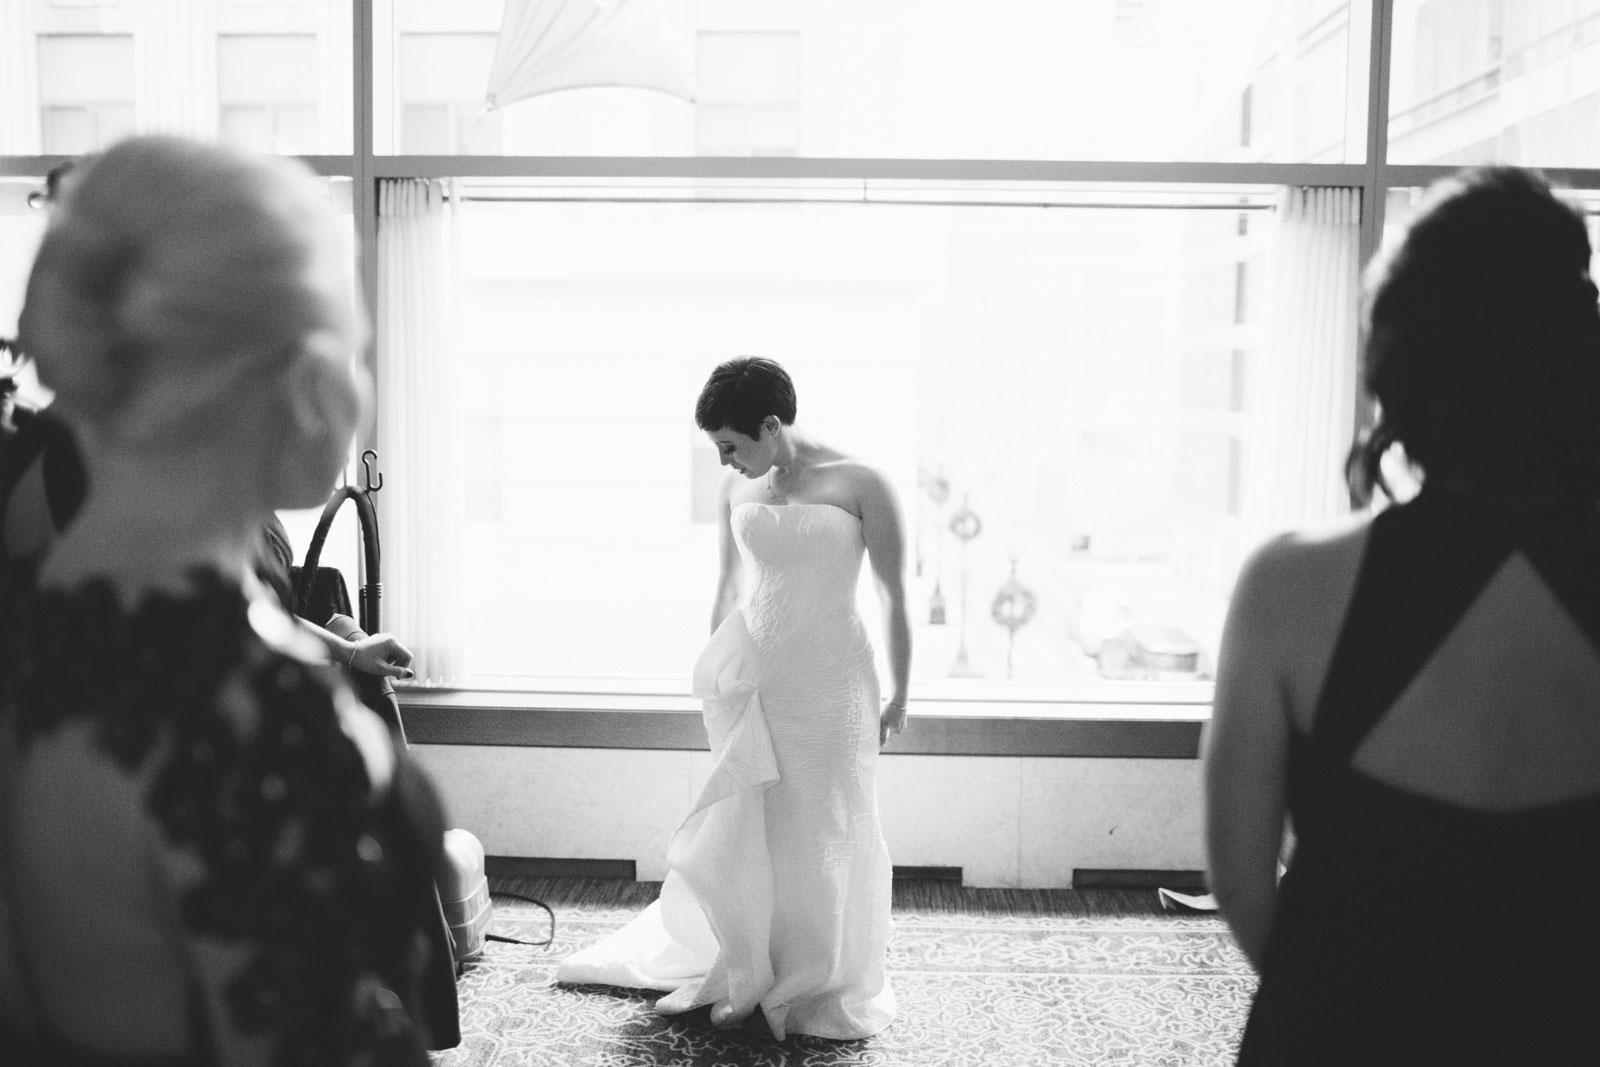 black and white silhouette of bride in asymmetrical wedding dress standing in front of window